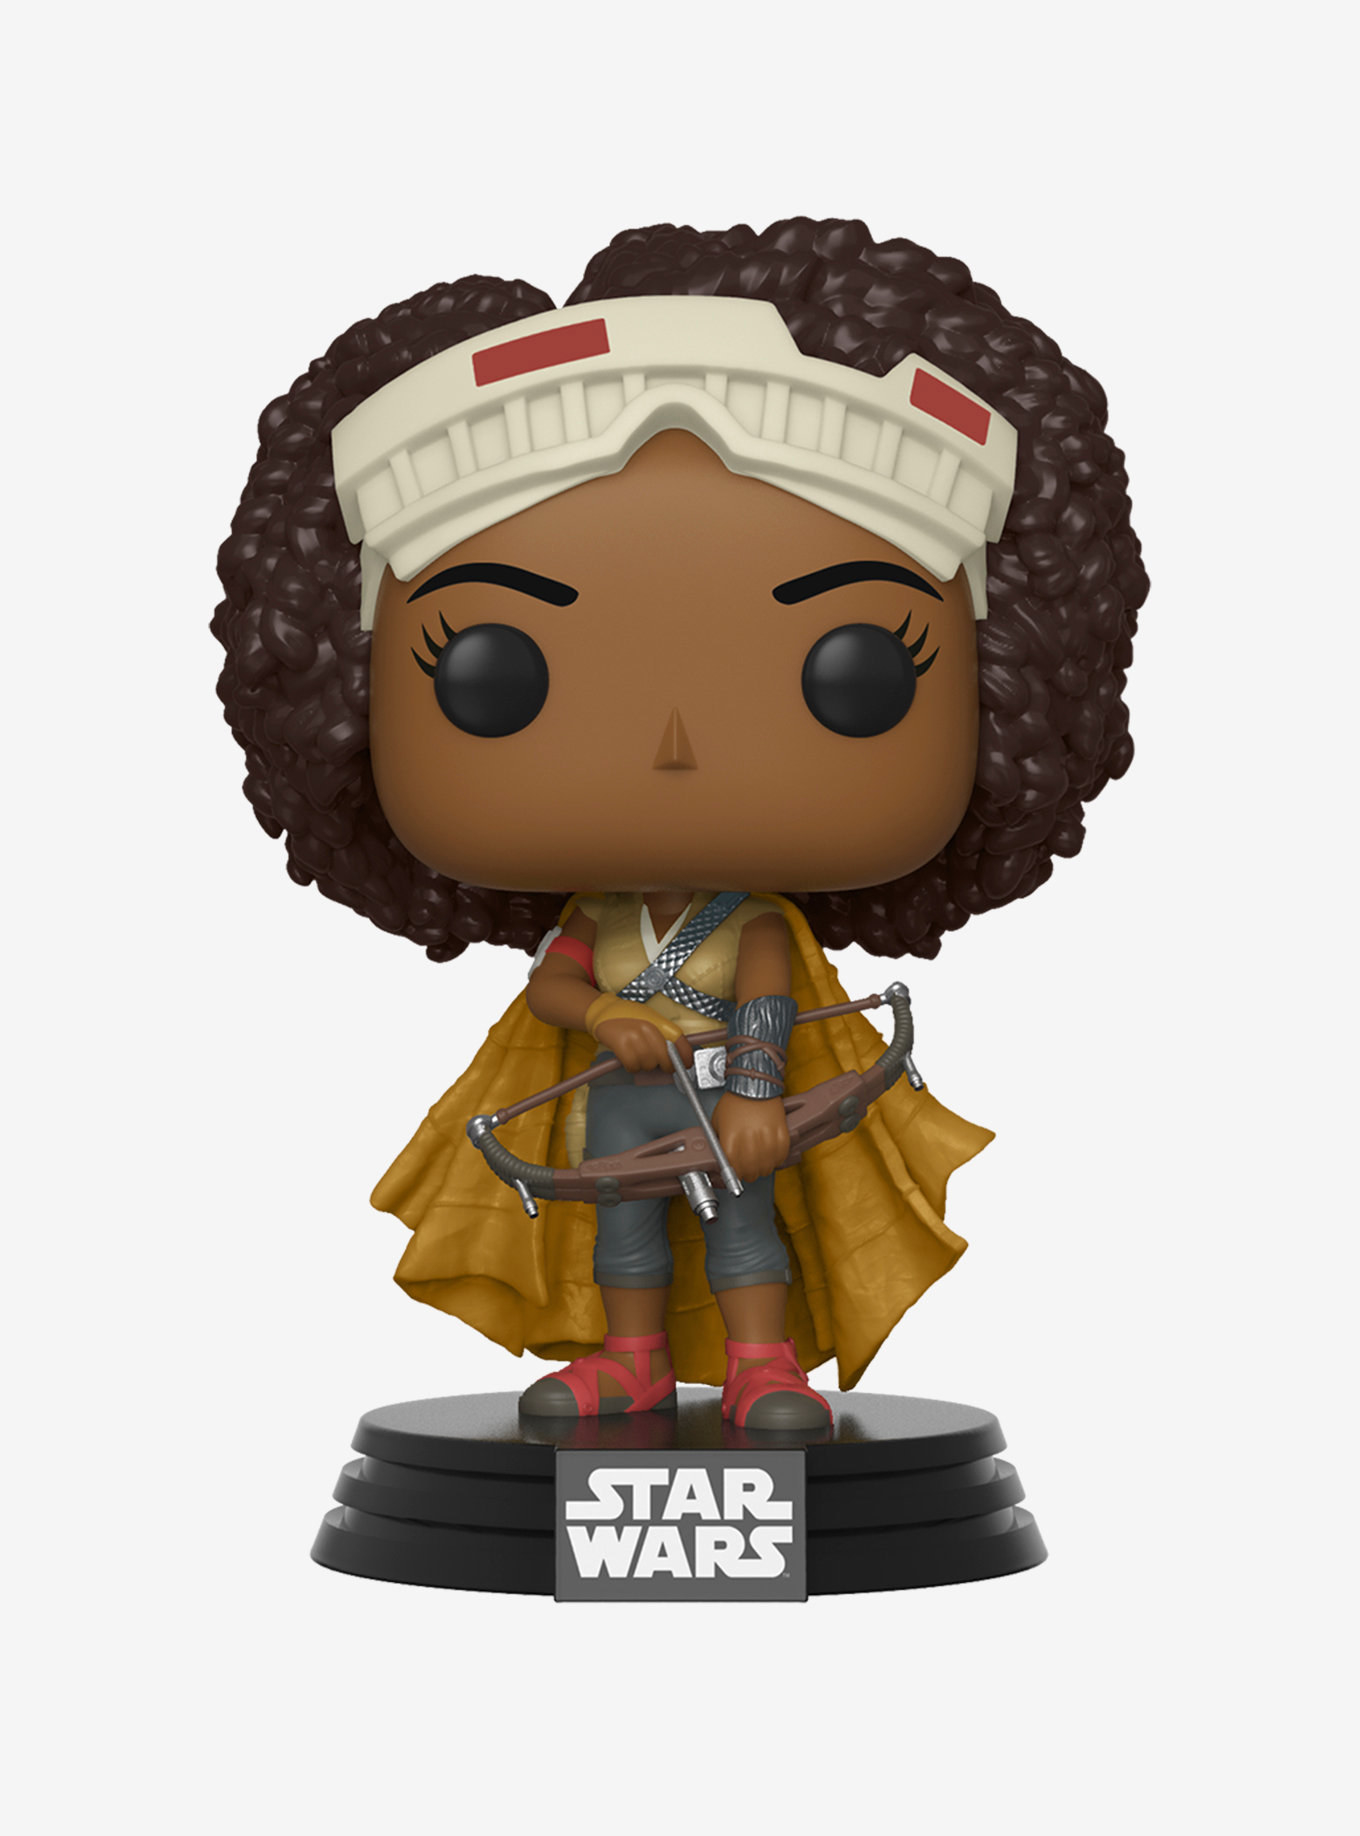 the funko of jannah wearing a cap holding a bow and arrow